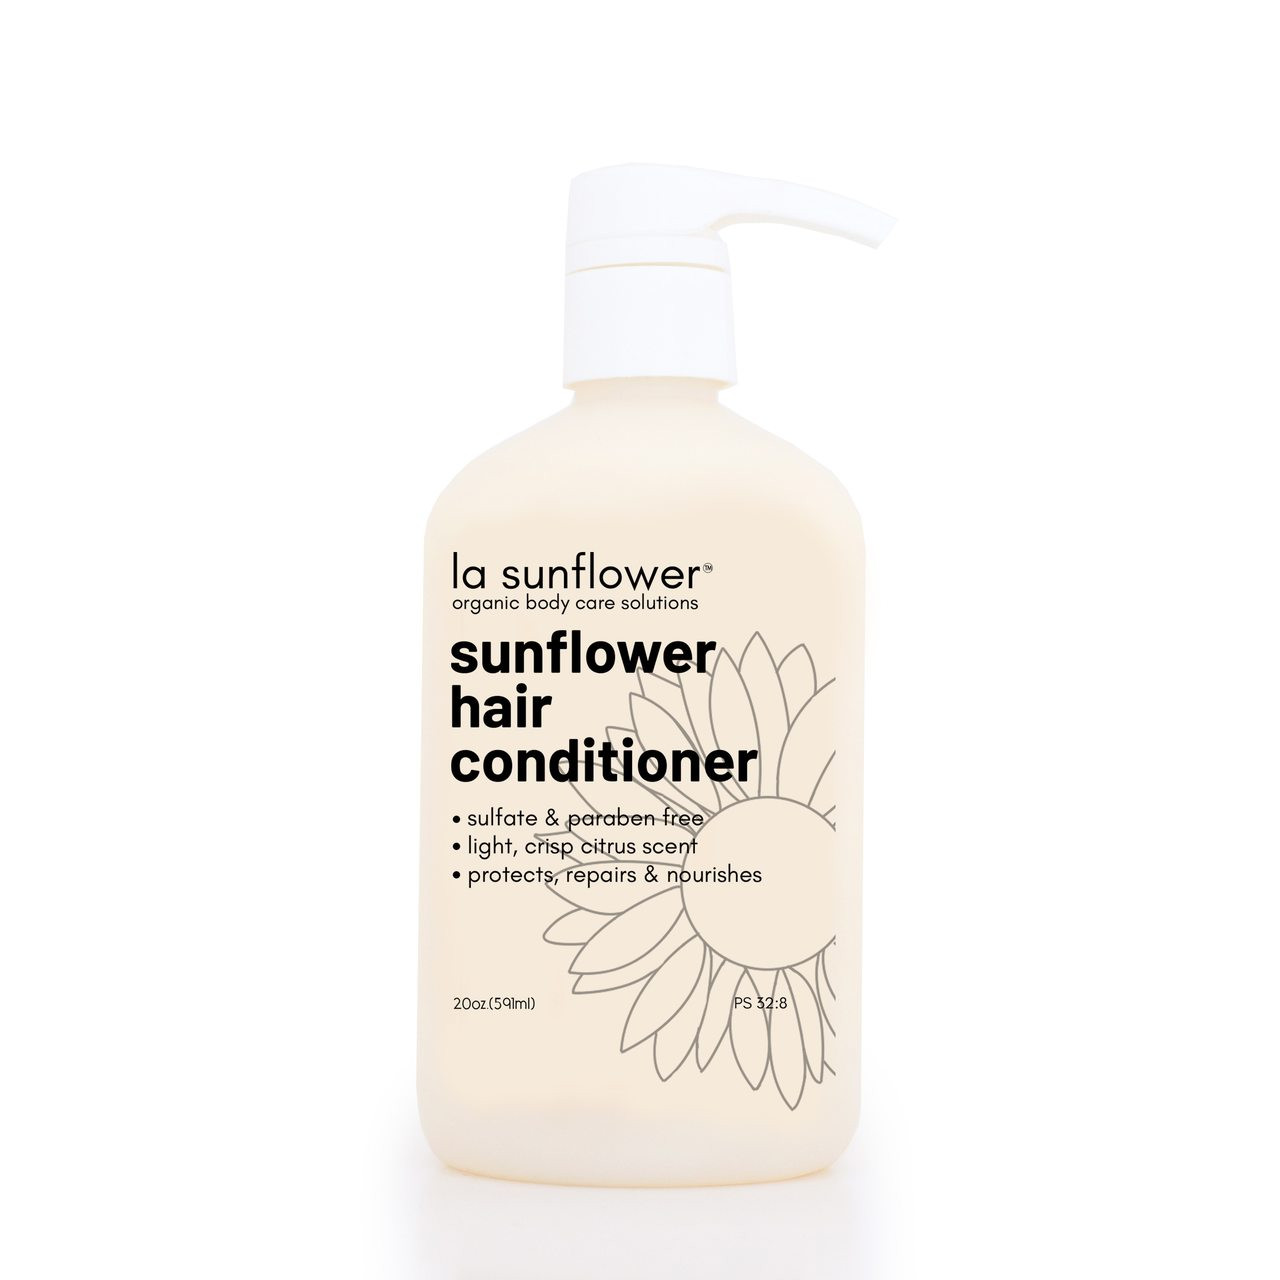 Sunflower Hair Conditioner